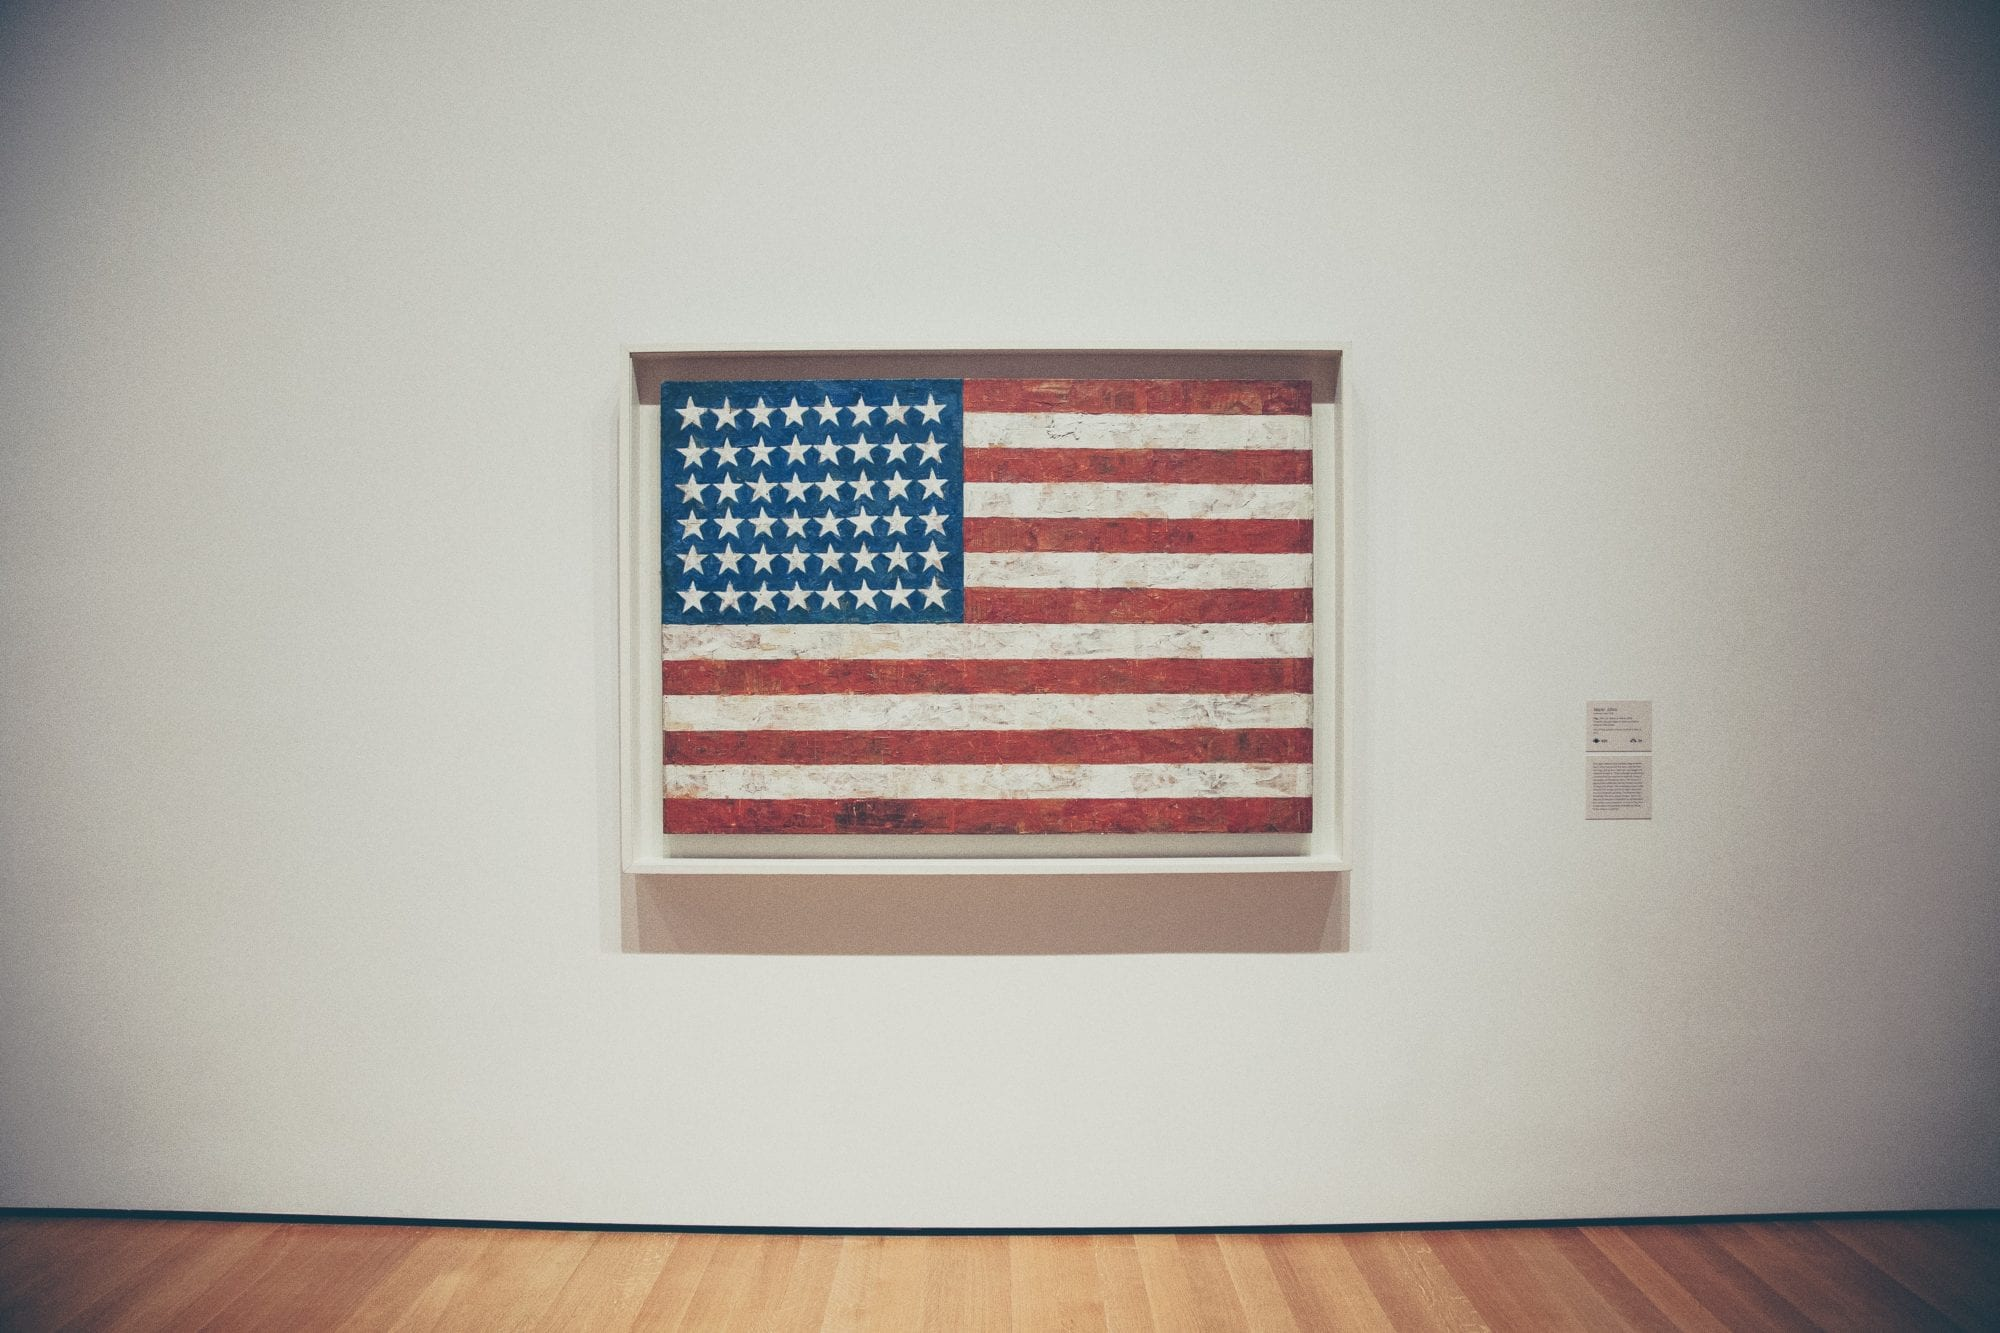 American flag on museum wall